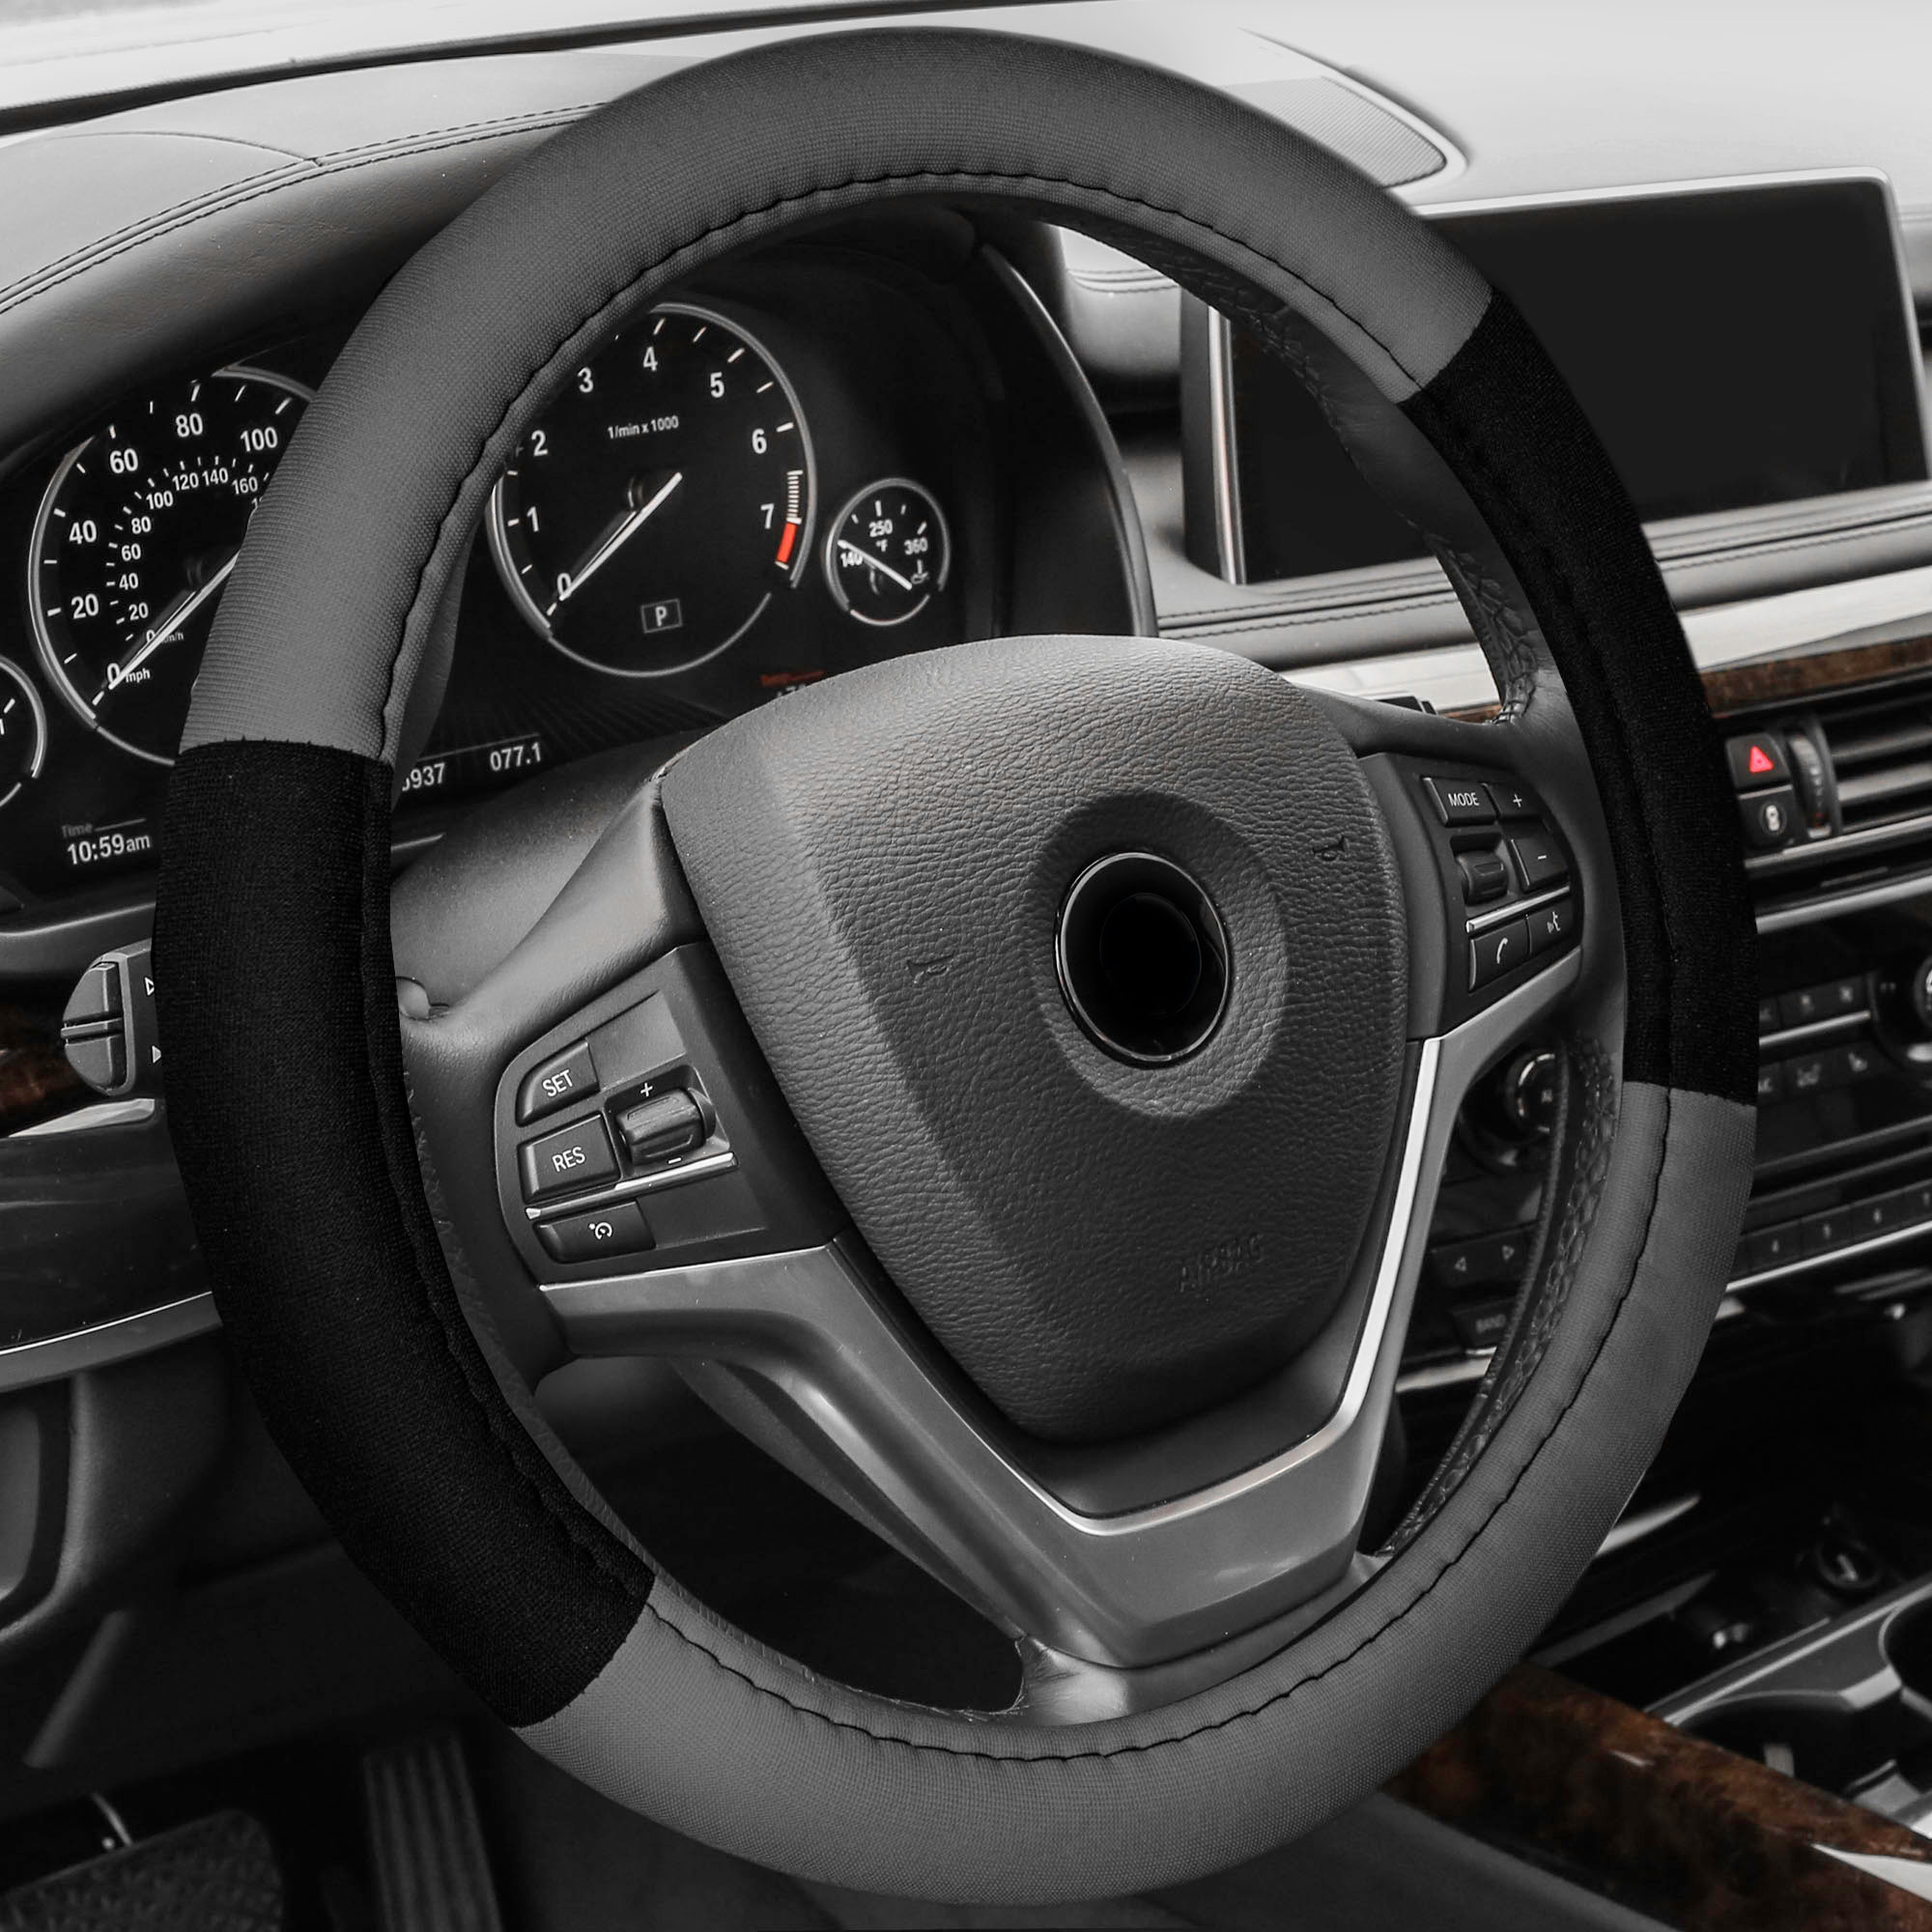 FH Group Cloth Steering Wheel Cover for Sedan, SUV, Van, Cloth Steering Wheel Cover, Gray Black